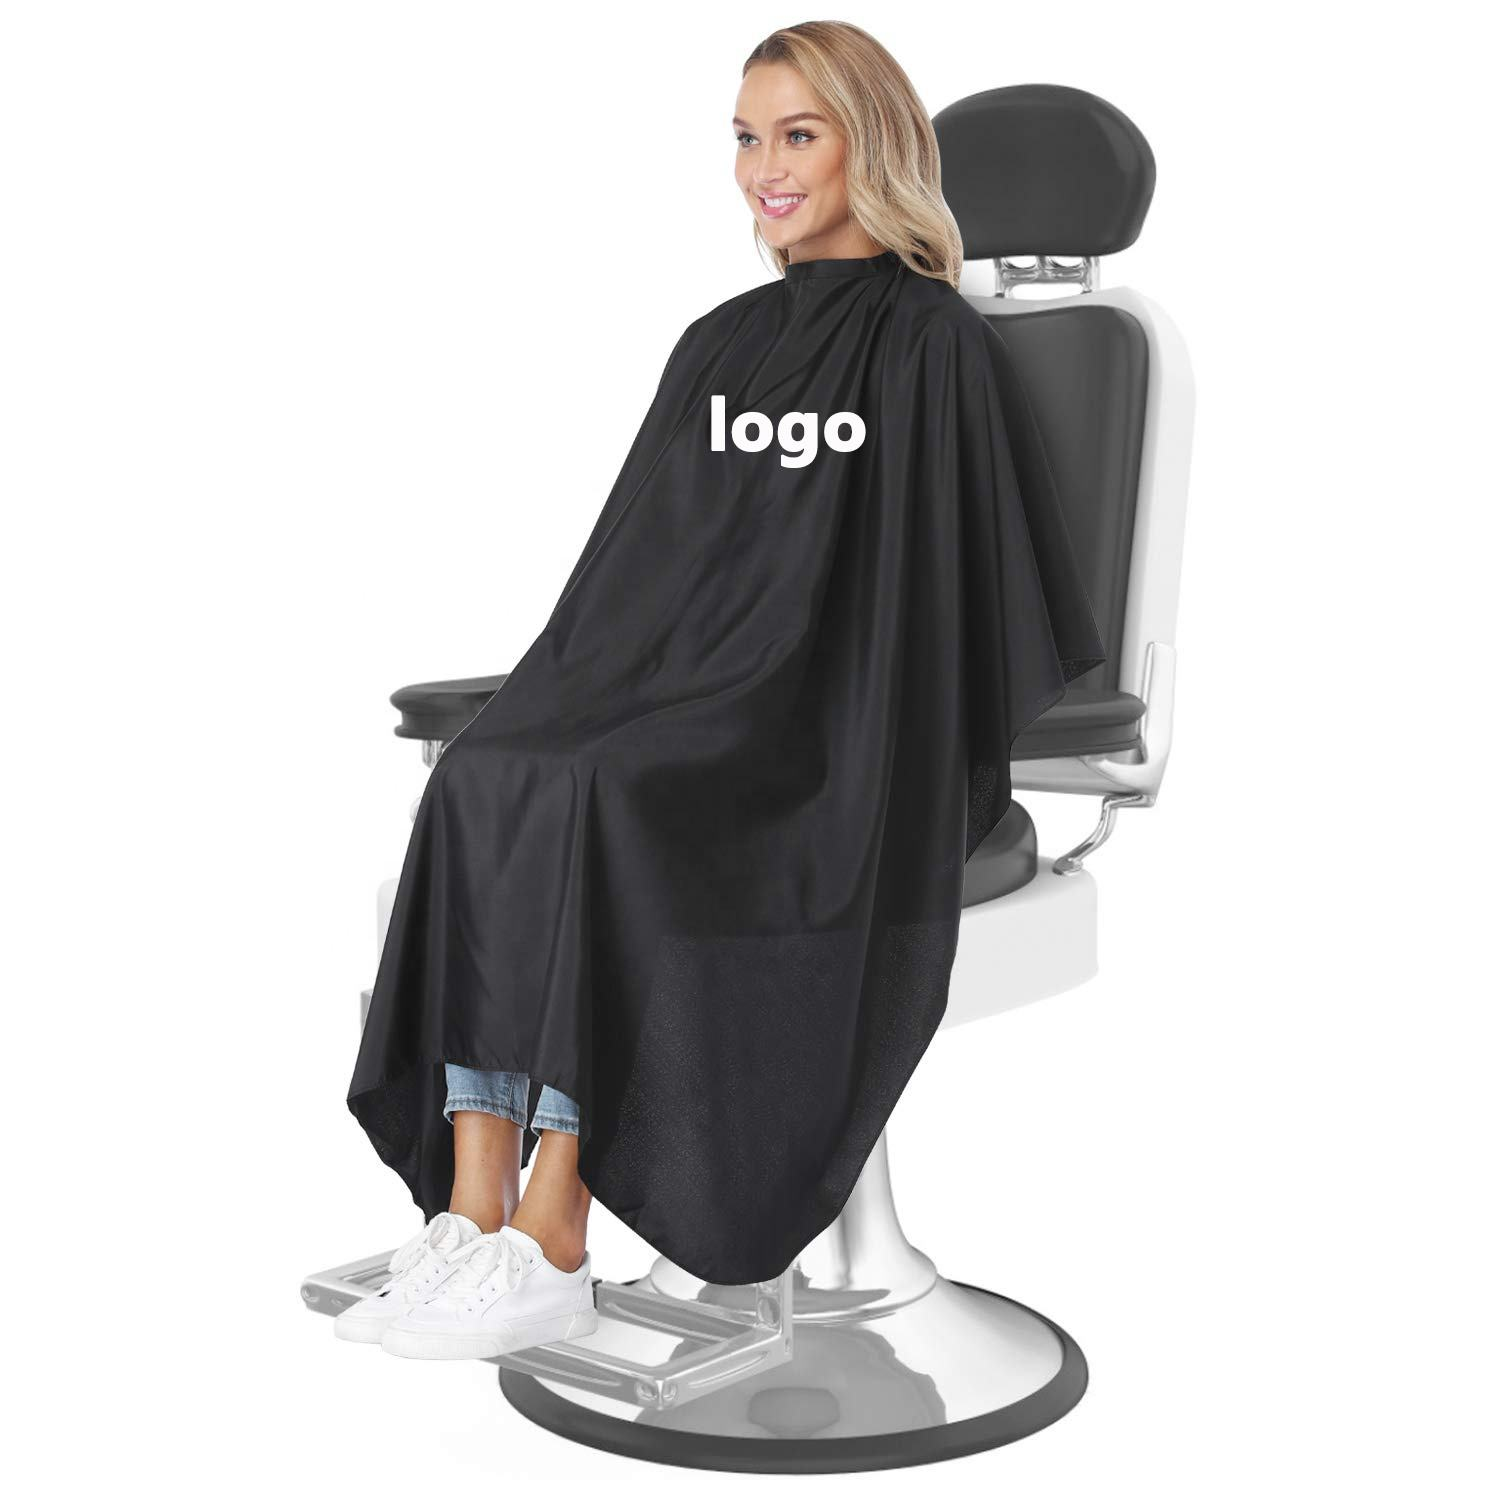 custom logo polyester hair salon makeup haircut gown barber hairdresser capes